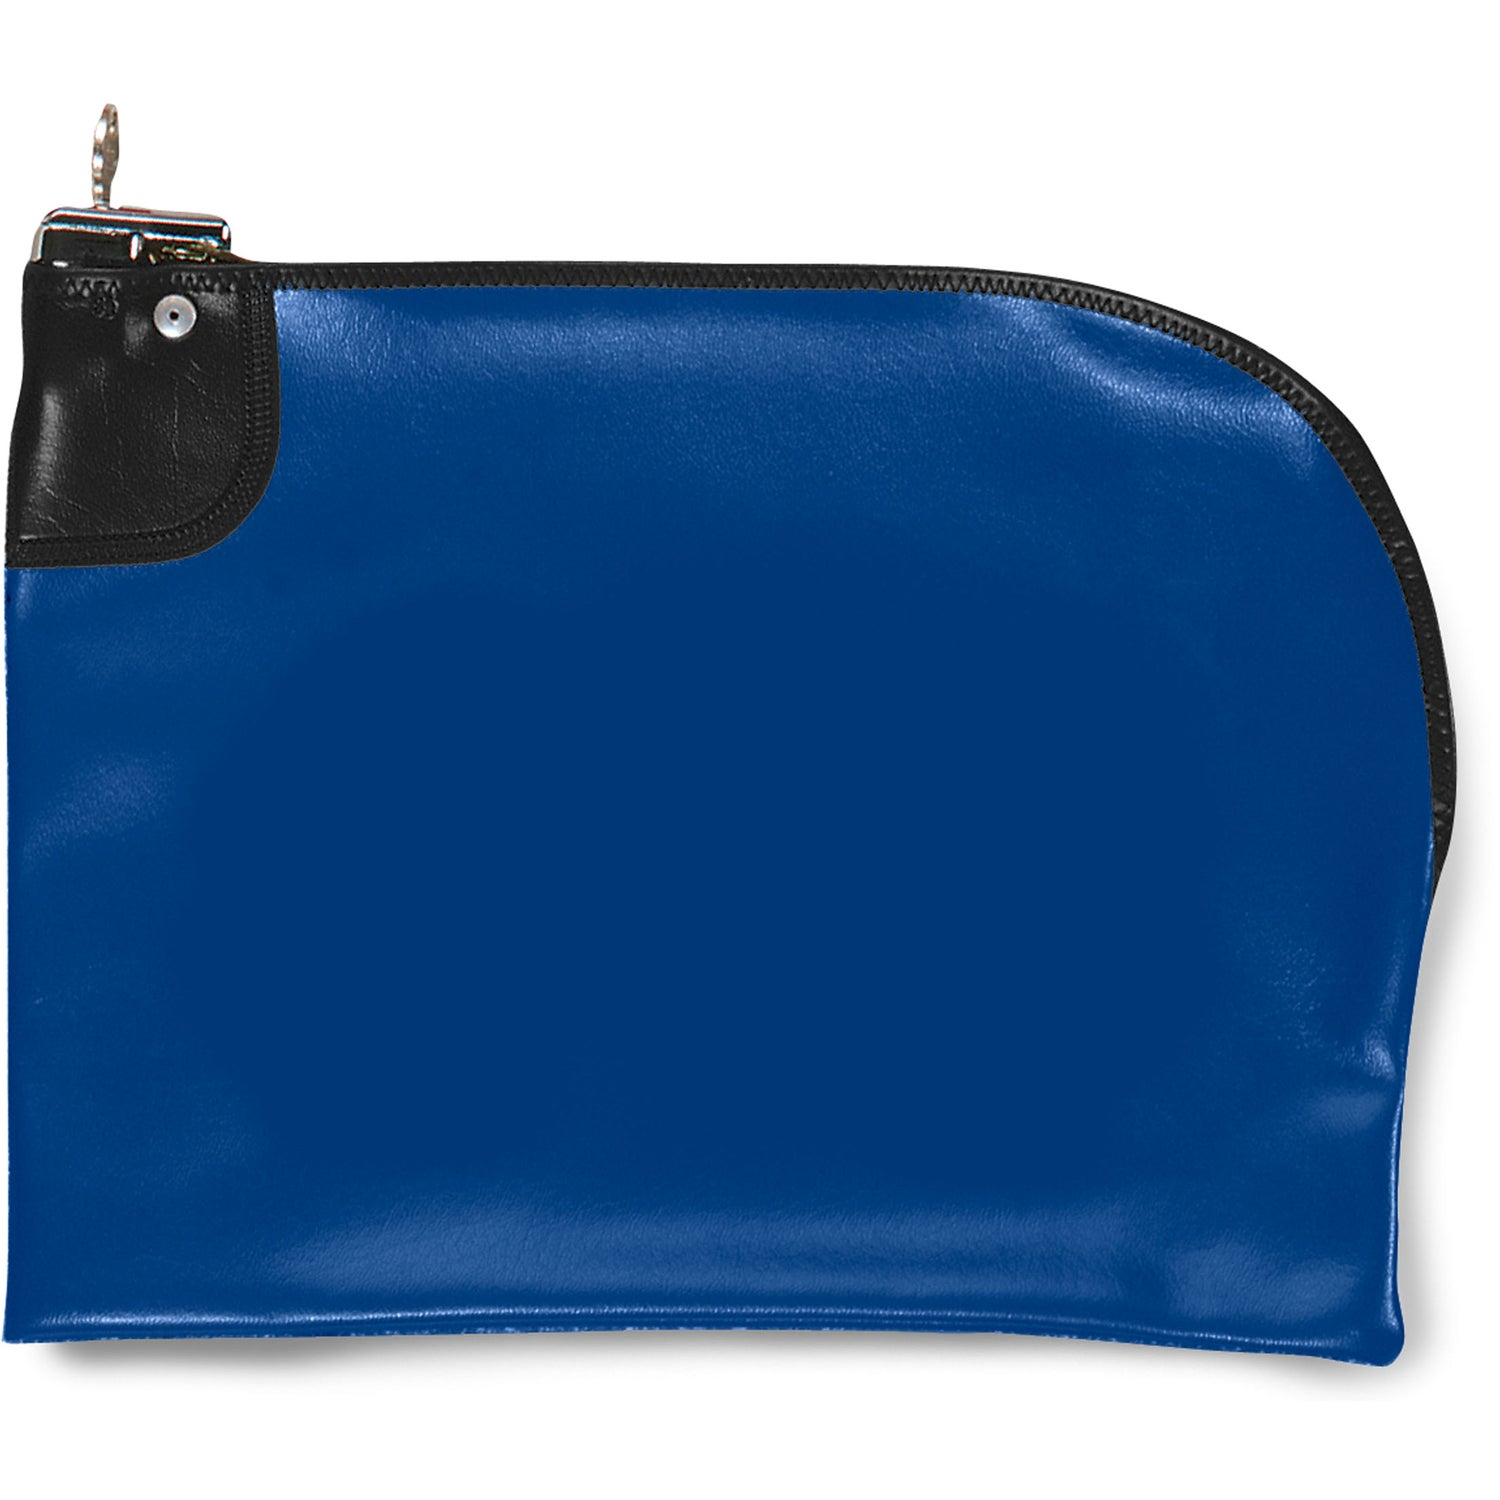 Royal Blue Curved Night Deposit Bag Ev 10 5